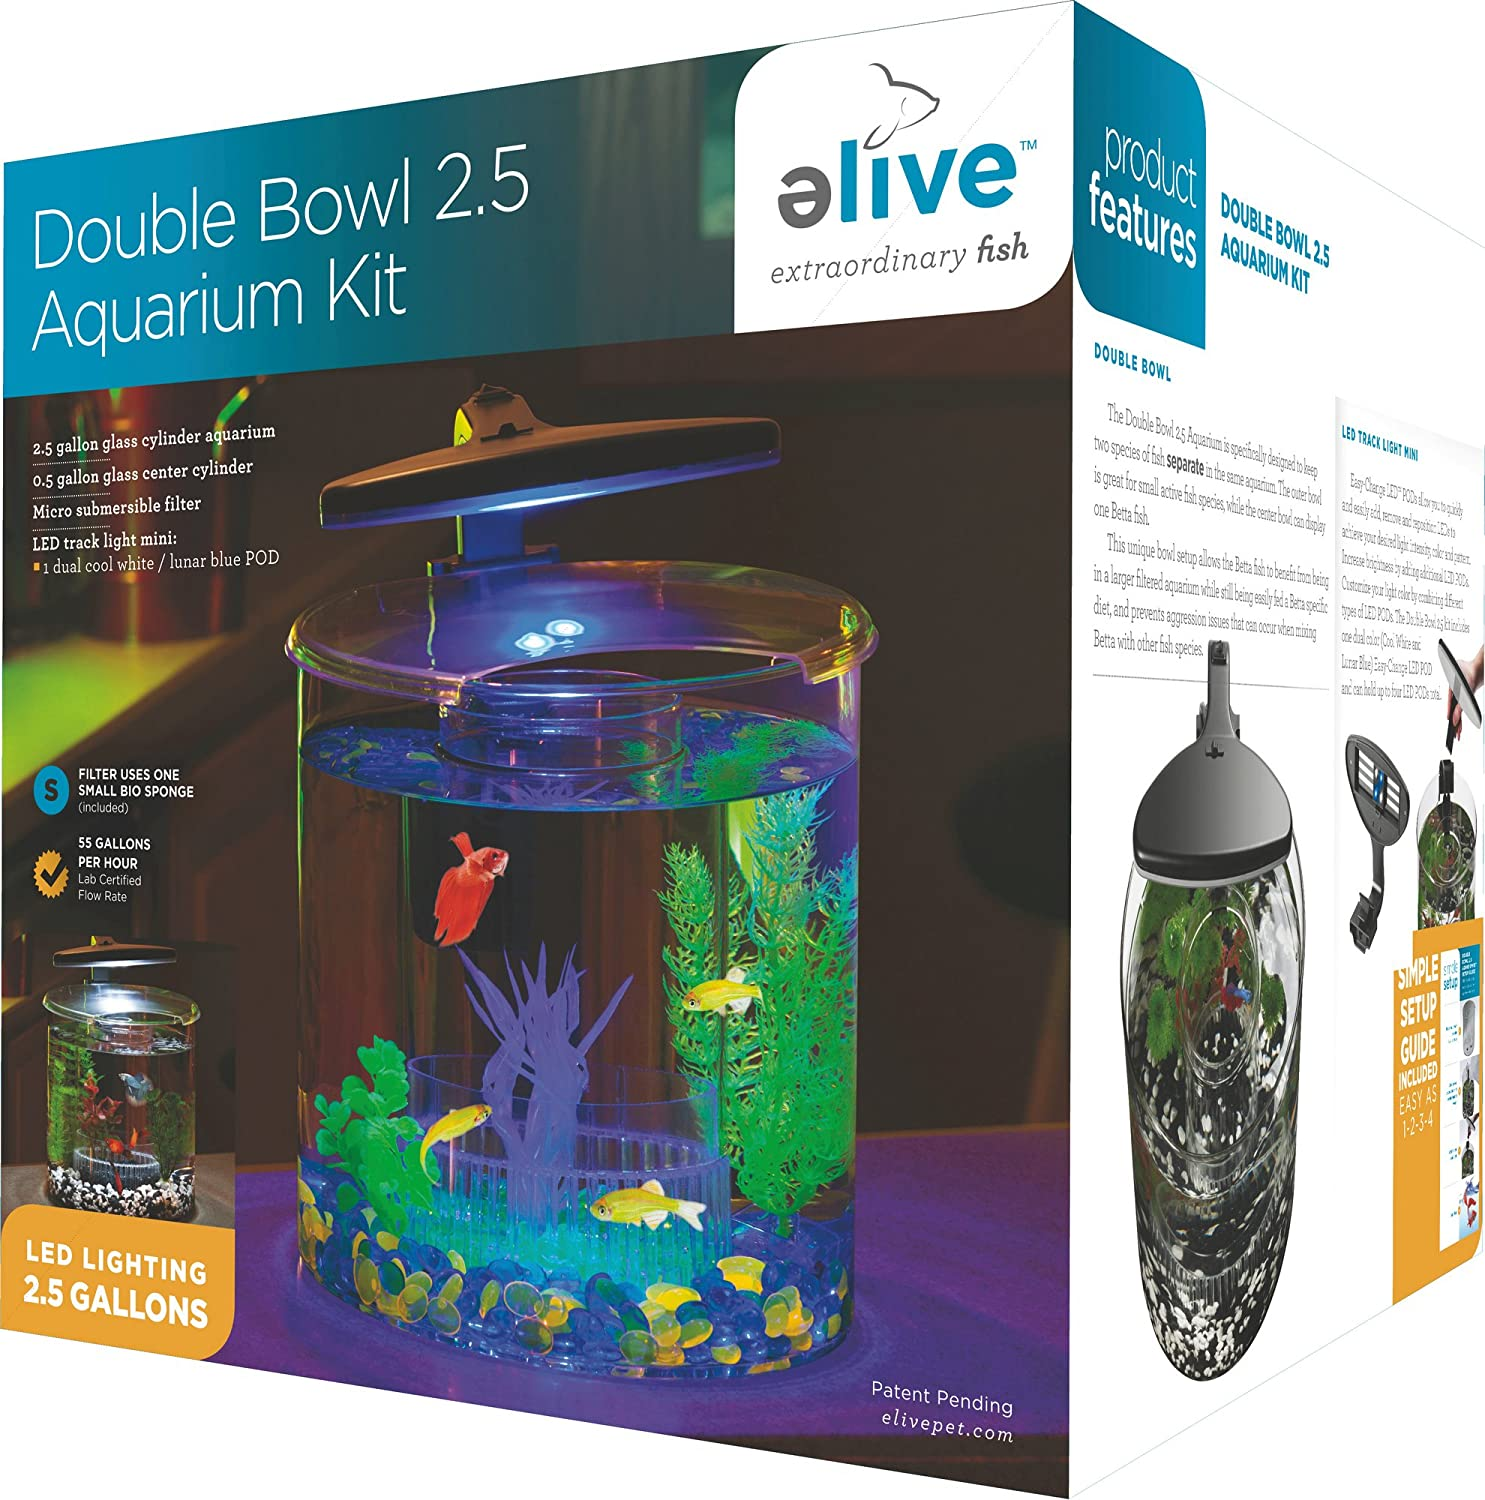 Elive Double Bowl Kit, Upc 081997010425, Mfg 1042, Size  2.5 Gallon